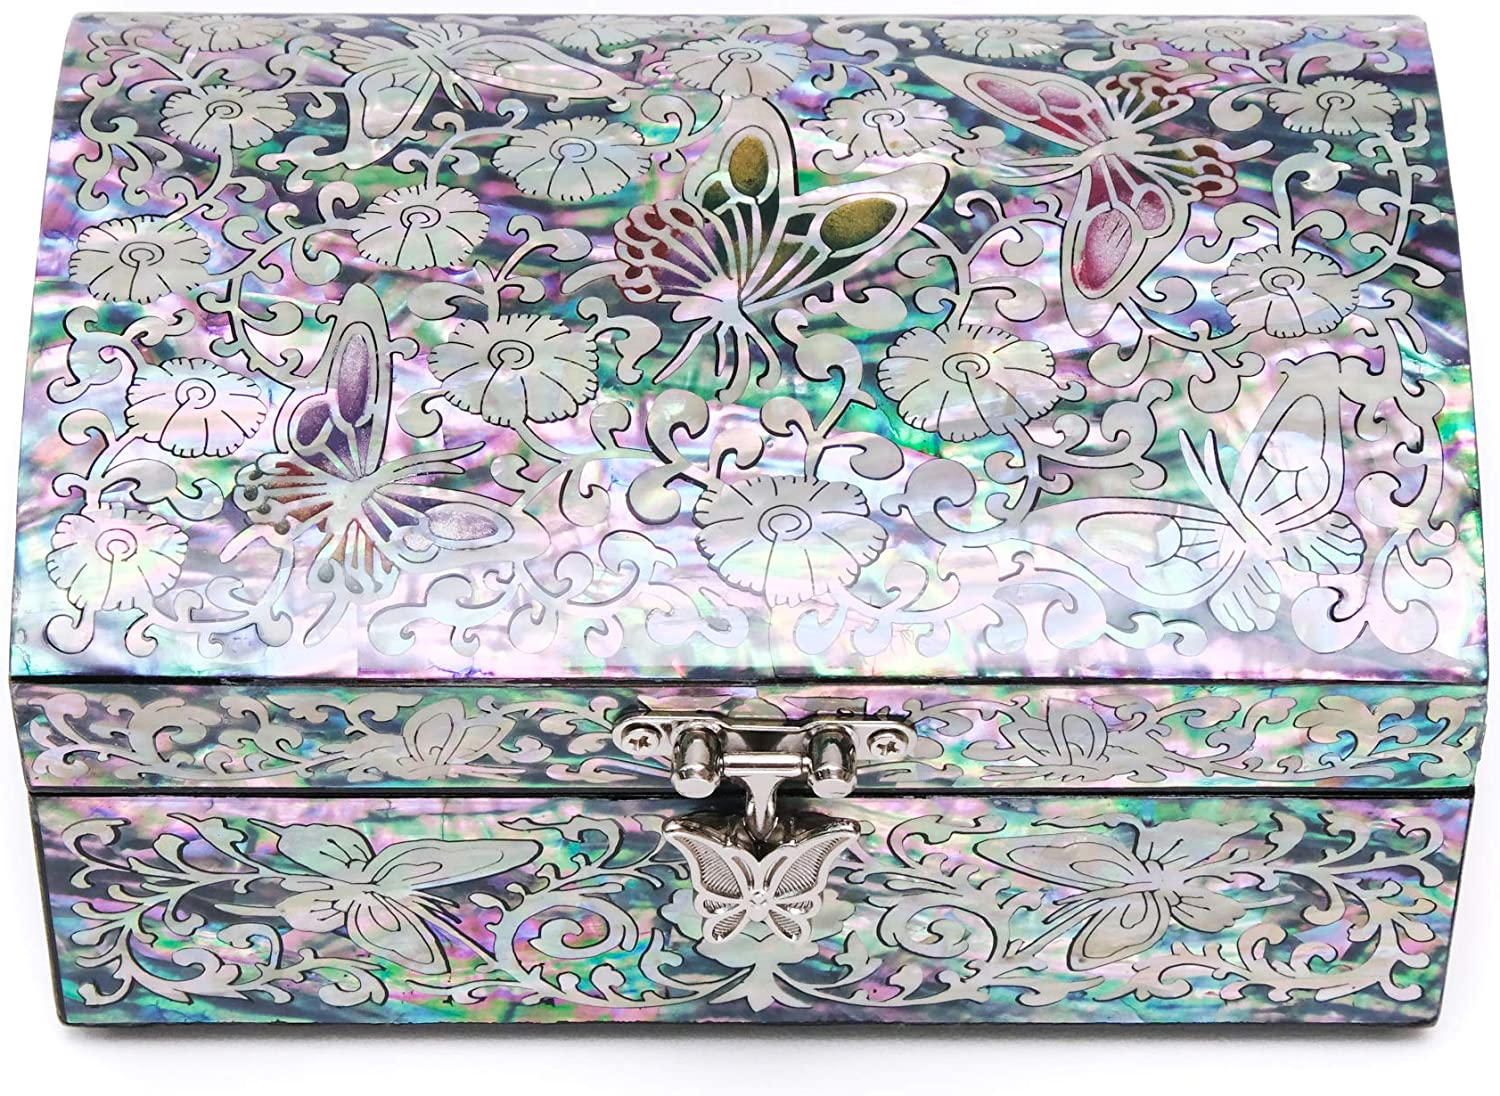 MADDesign Mother of Pearl Jewelry Trinket Box Sea Shell Inlaid Mirror Lid Pink Floral Butterfly Design